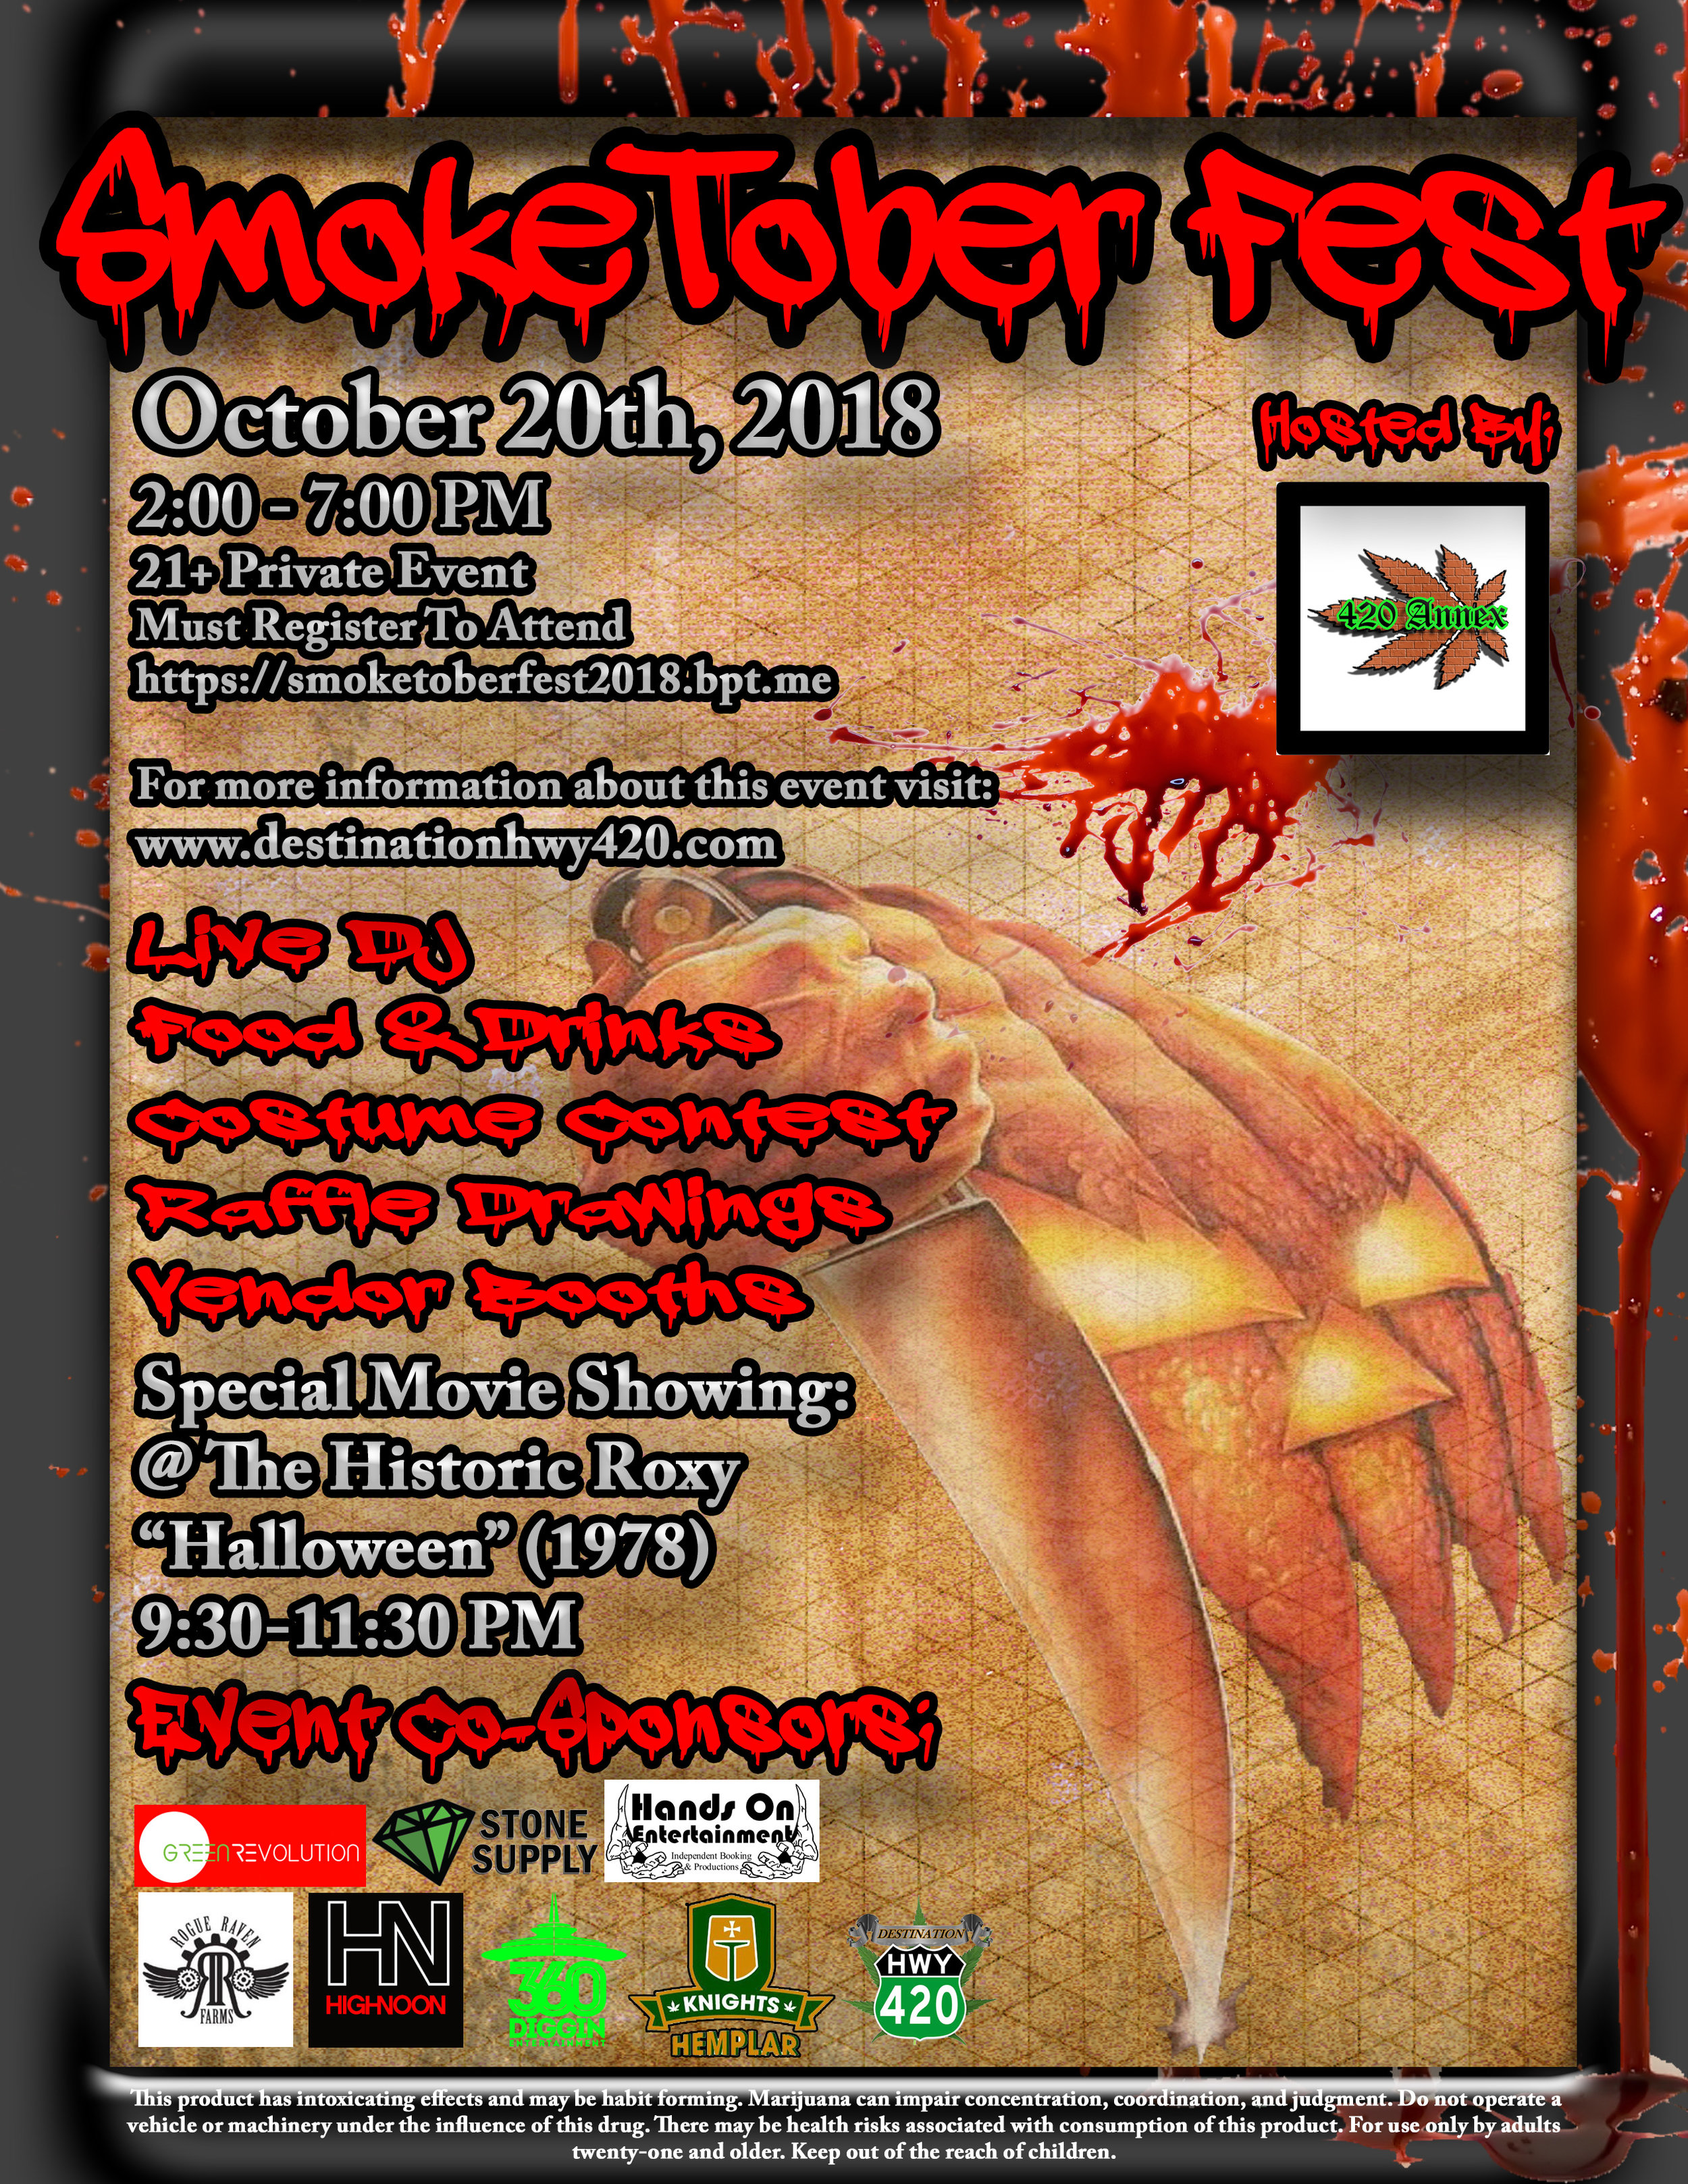 SmokeTober Fest:  Join the 420 Annex, Destination HWY 420, Stone Supply, High Noon, Pono Farms, Green Revolution, Rogue Raven, and well-known local entertainers at Bremerton's first ever SmokeTober Fest! Raffle Drawings, Giveaways, Live DJ, Entertainment, Food, Drinks, Costume Contest, Cannabis Vendor Booths, Discounts on Marijuana products, and more.